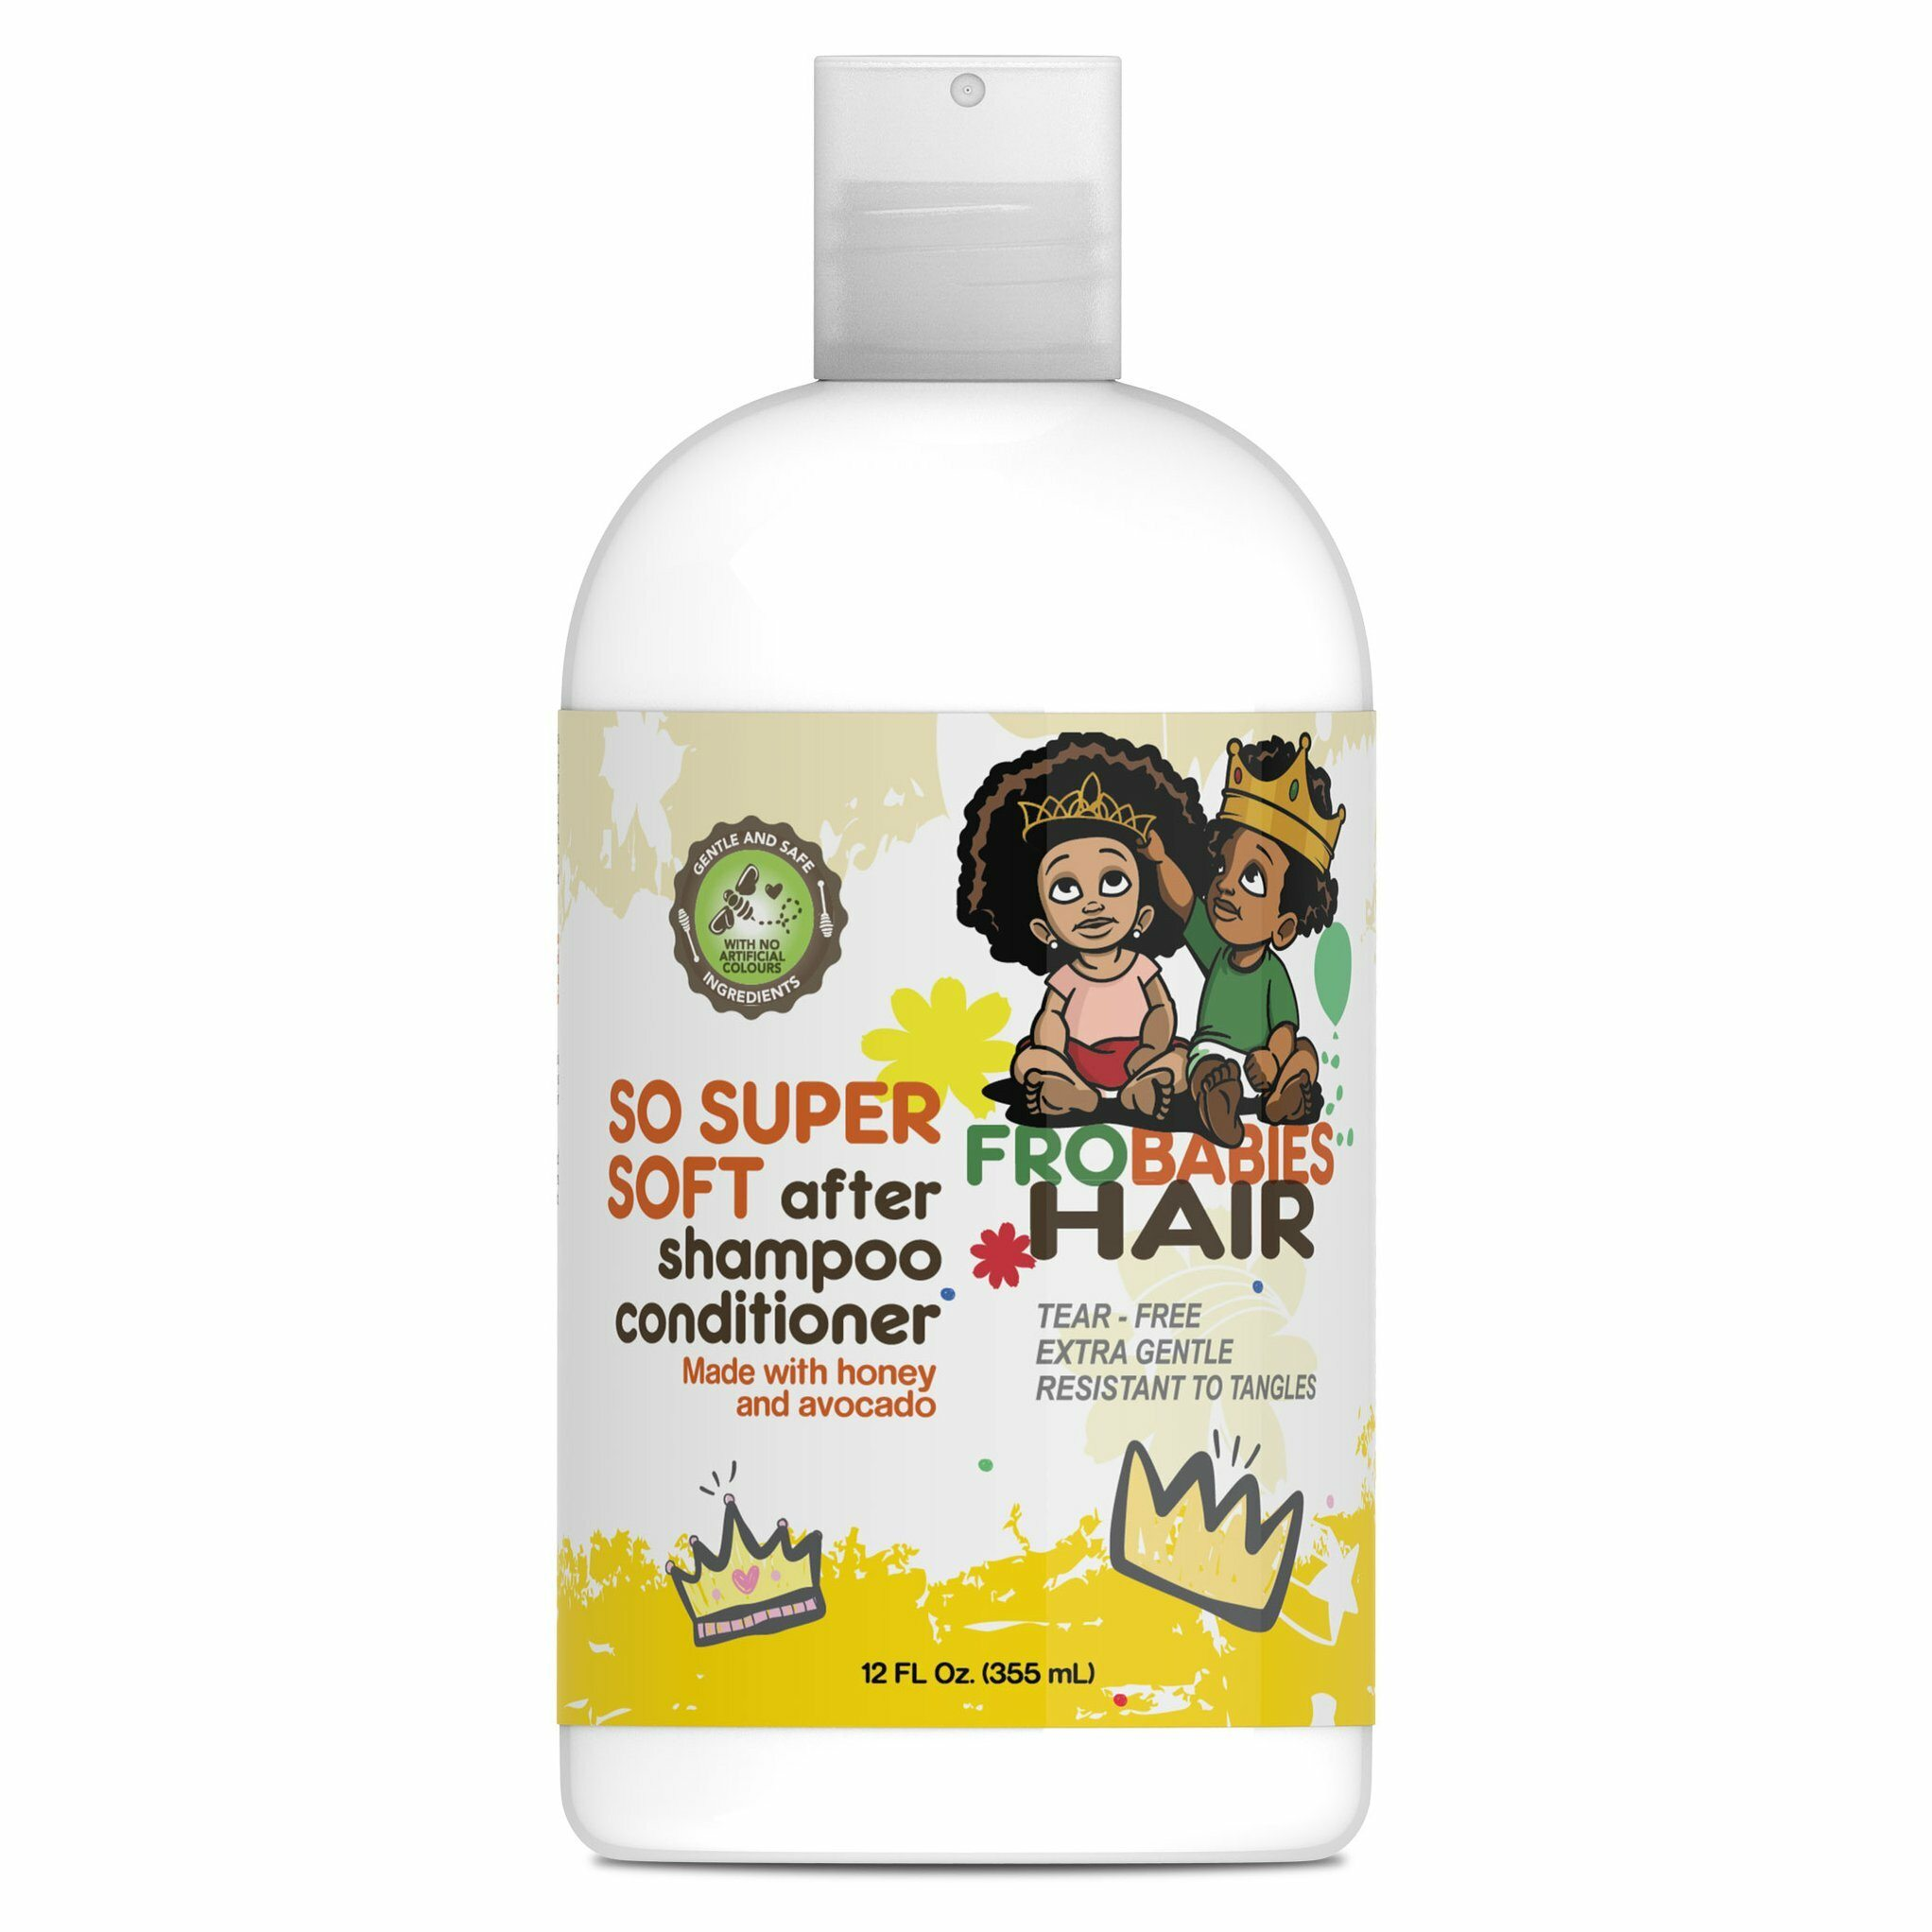 Fro Babies So Super Soft After Shampoo Conditioner Children's Products Fro Babies